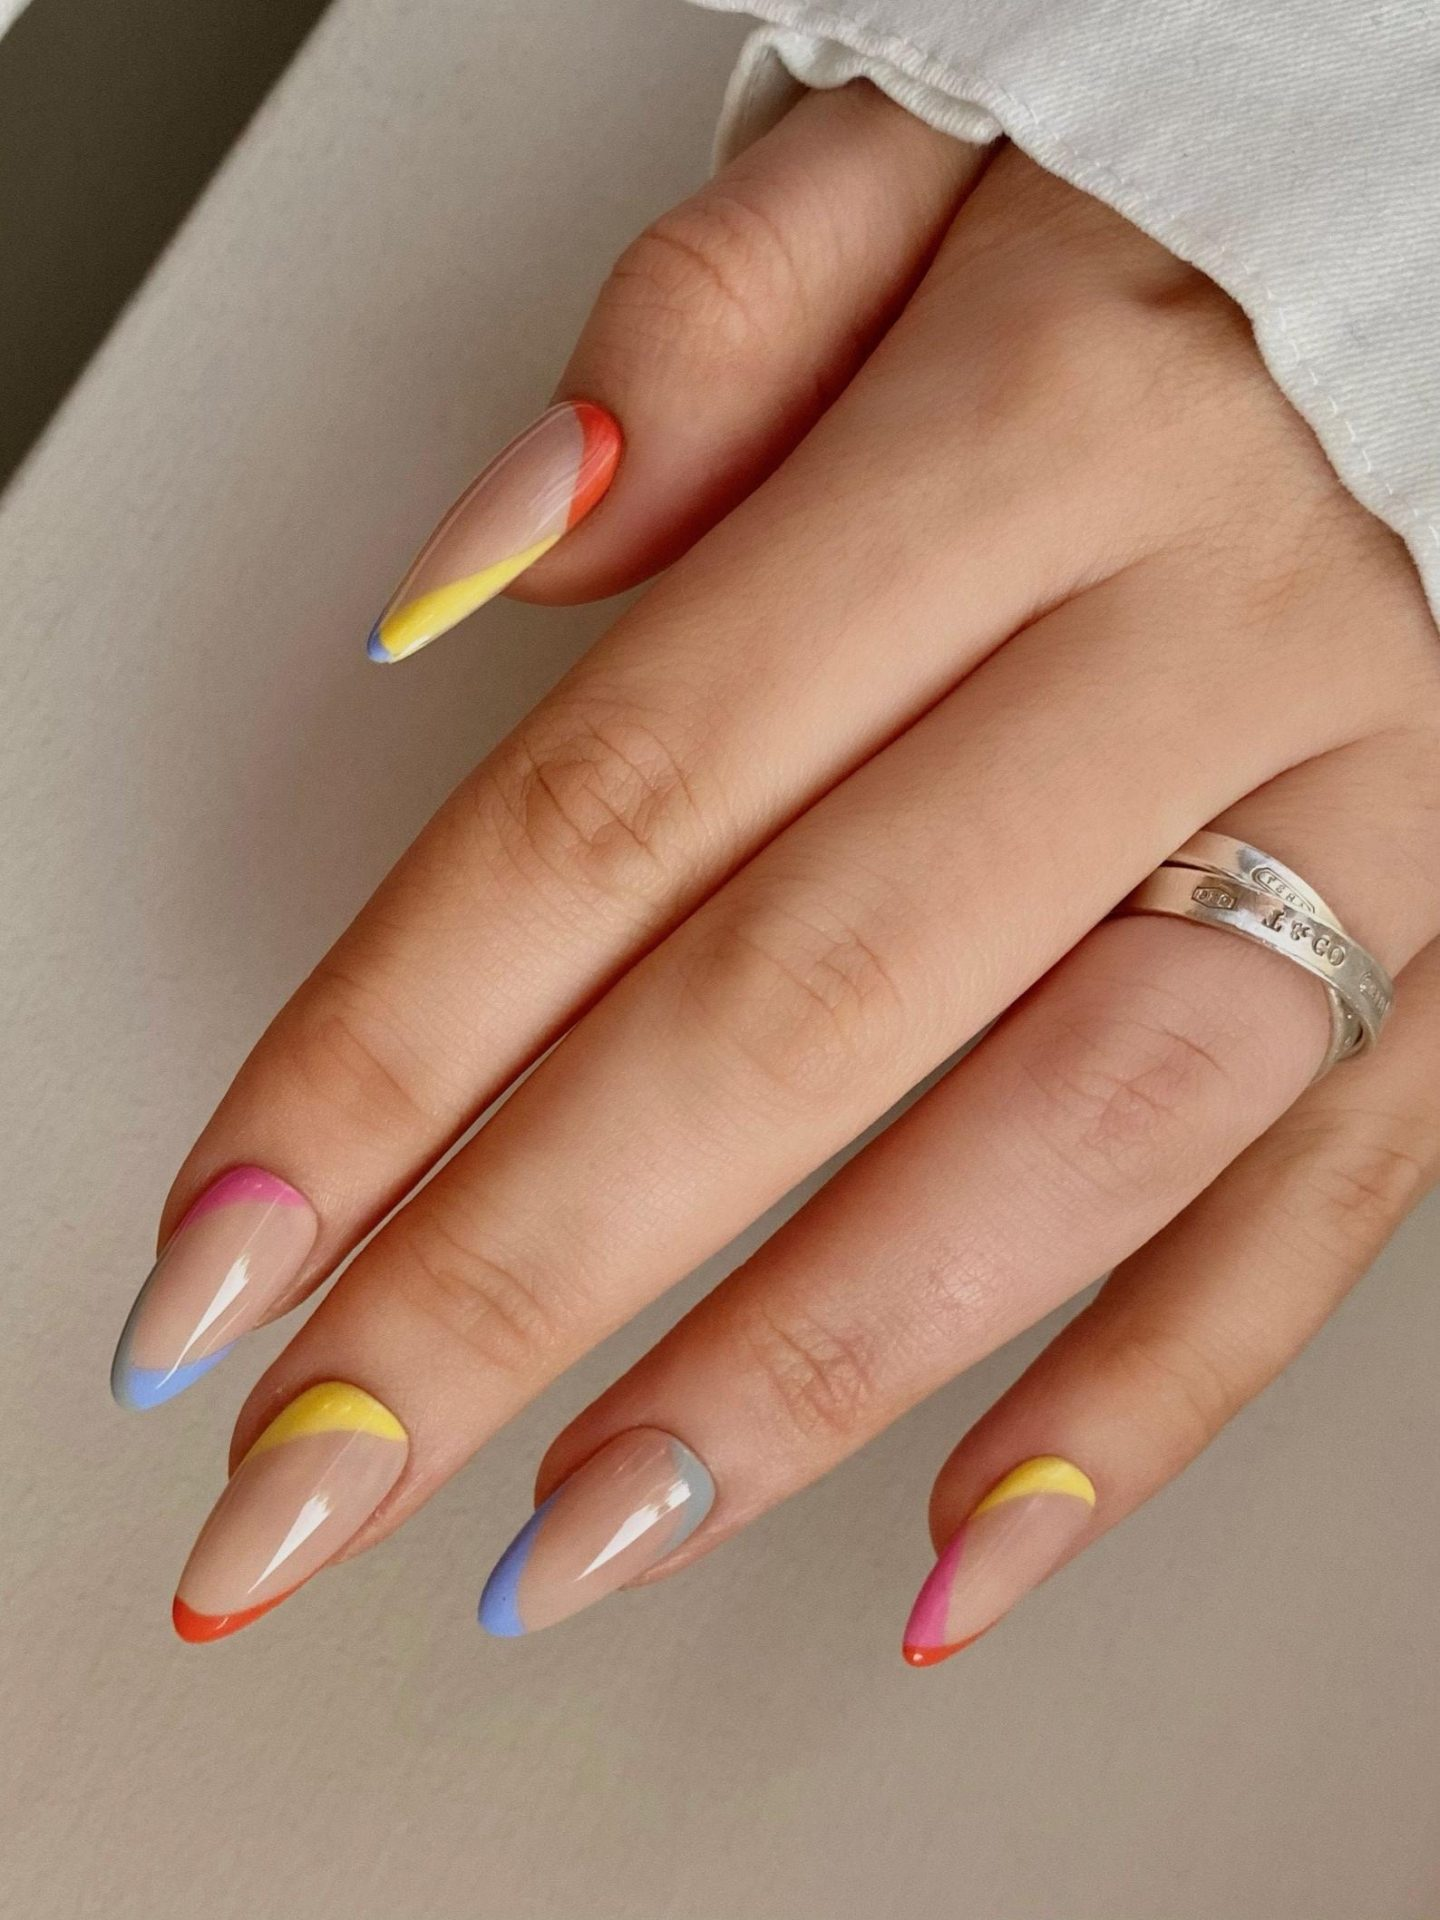 Abstract rainbow nails in almond shape